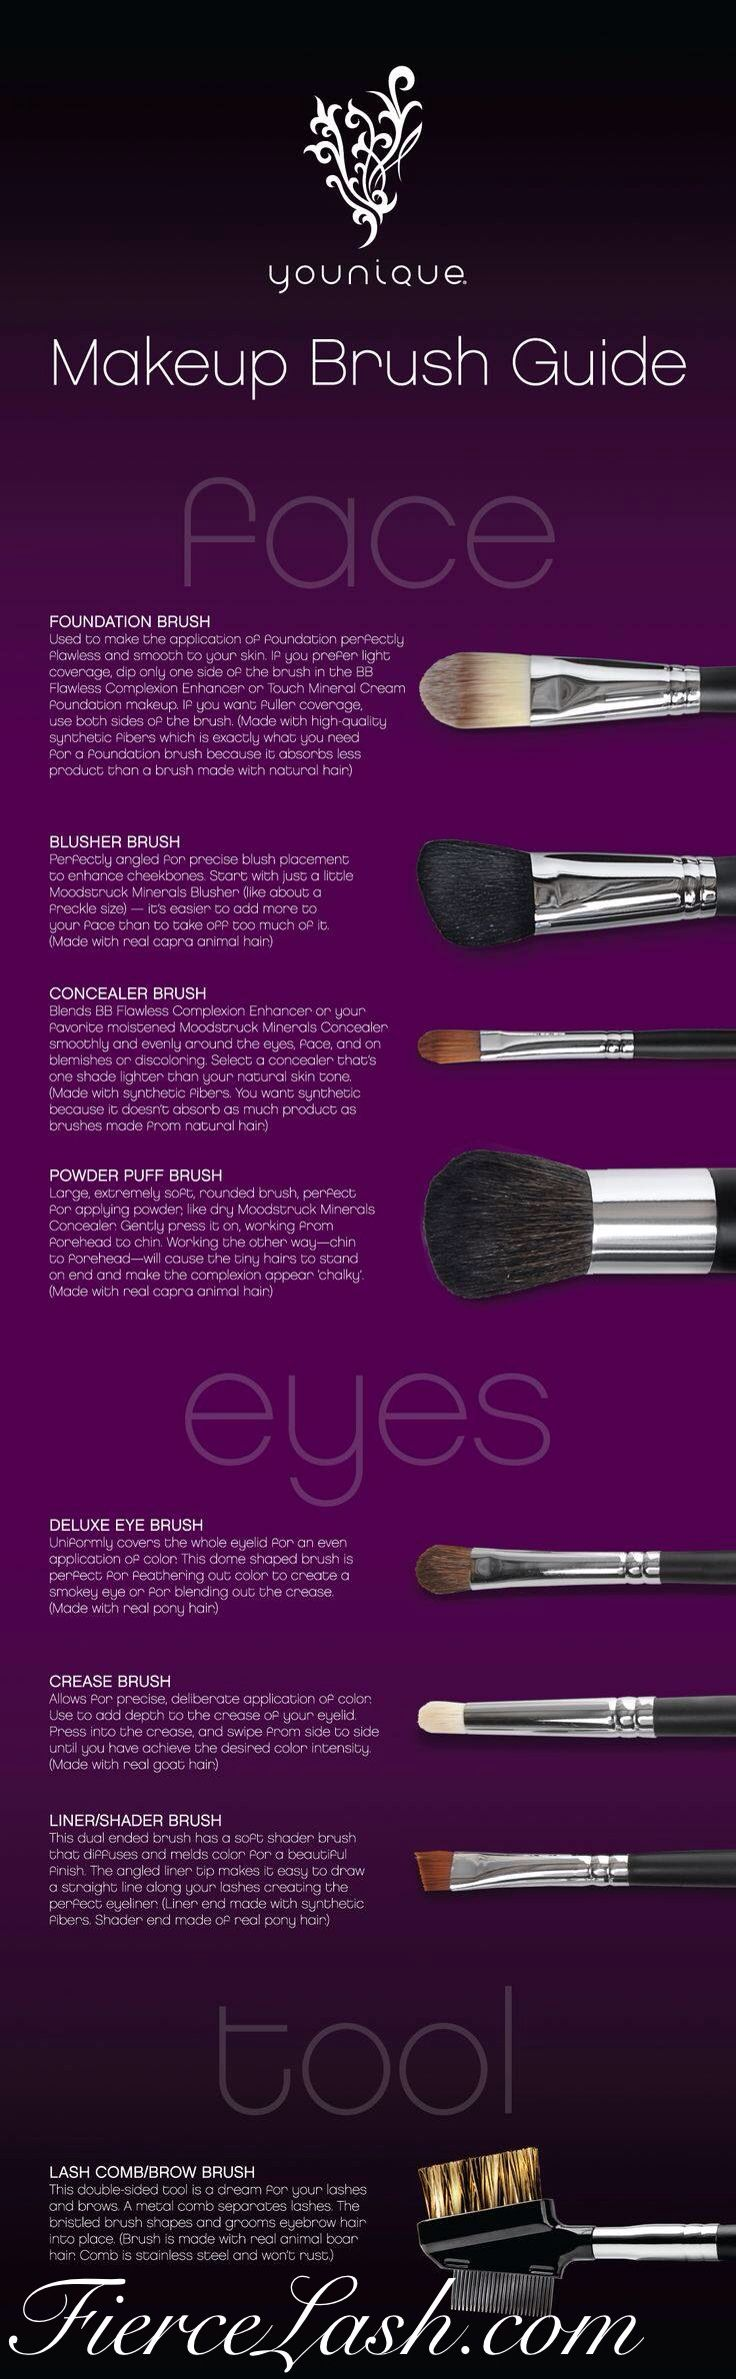 Cruelty free and made to last a lifetime. I love the quality of the Younique makeup brushes.